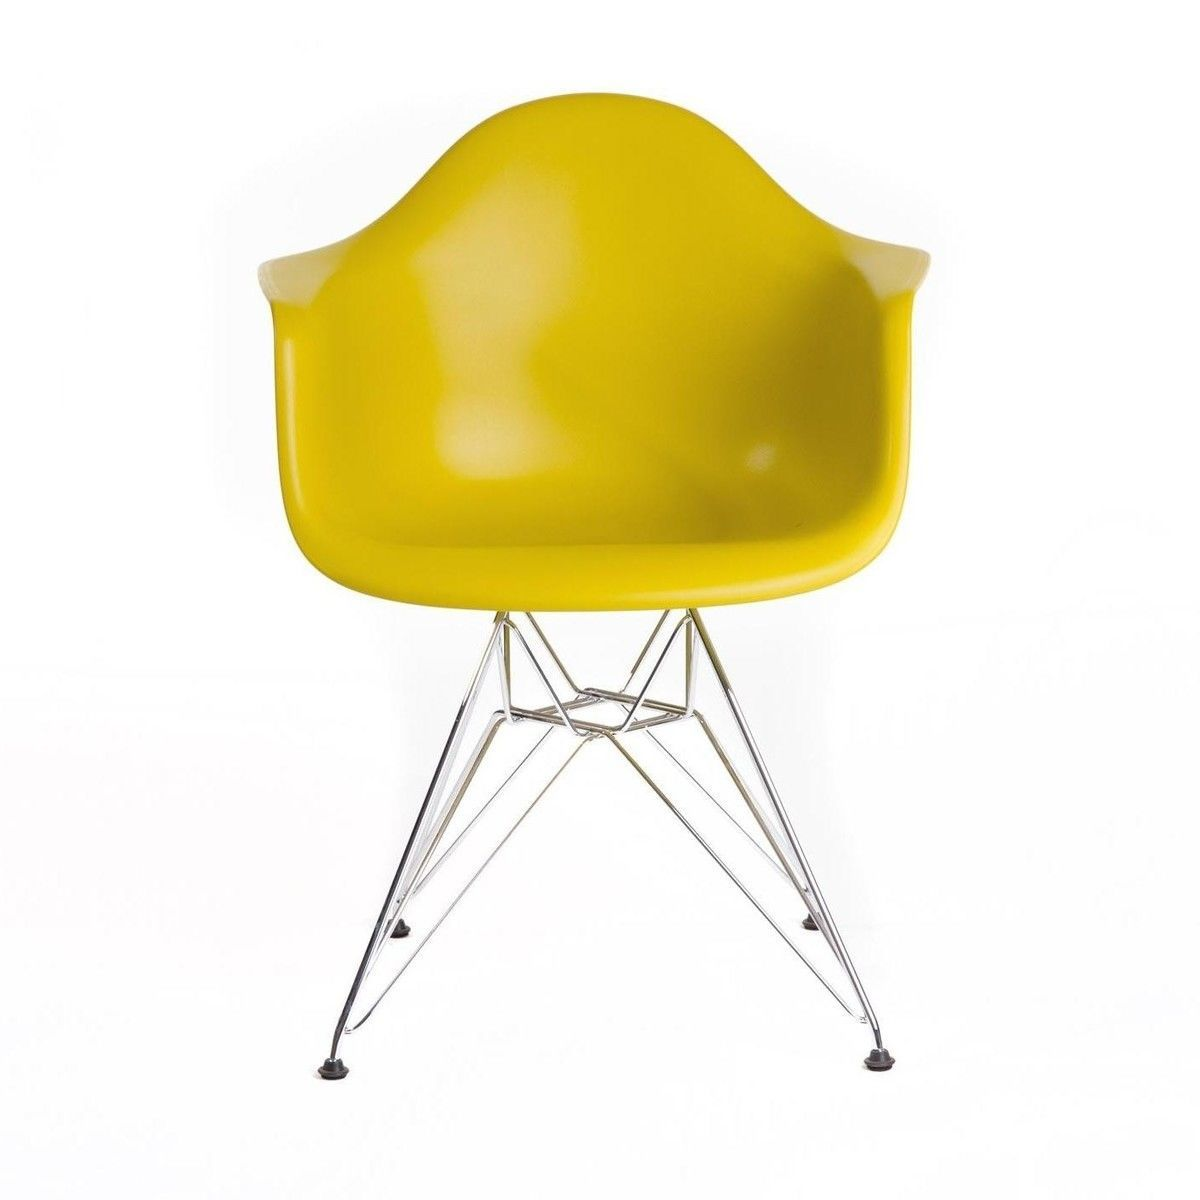 Eames plastic armchair dar chaise h43cm vitra for Chaise eames vitra soldes